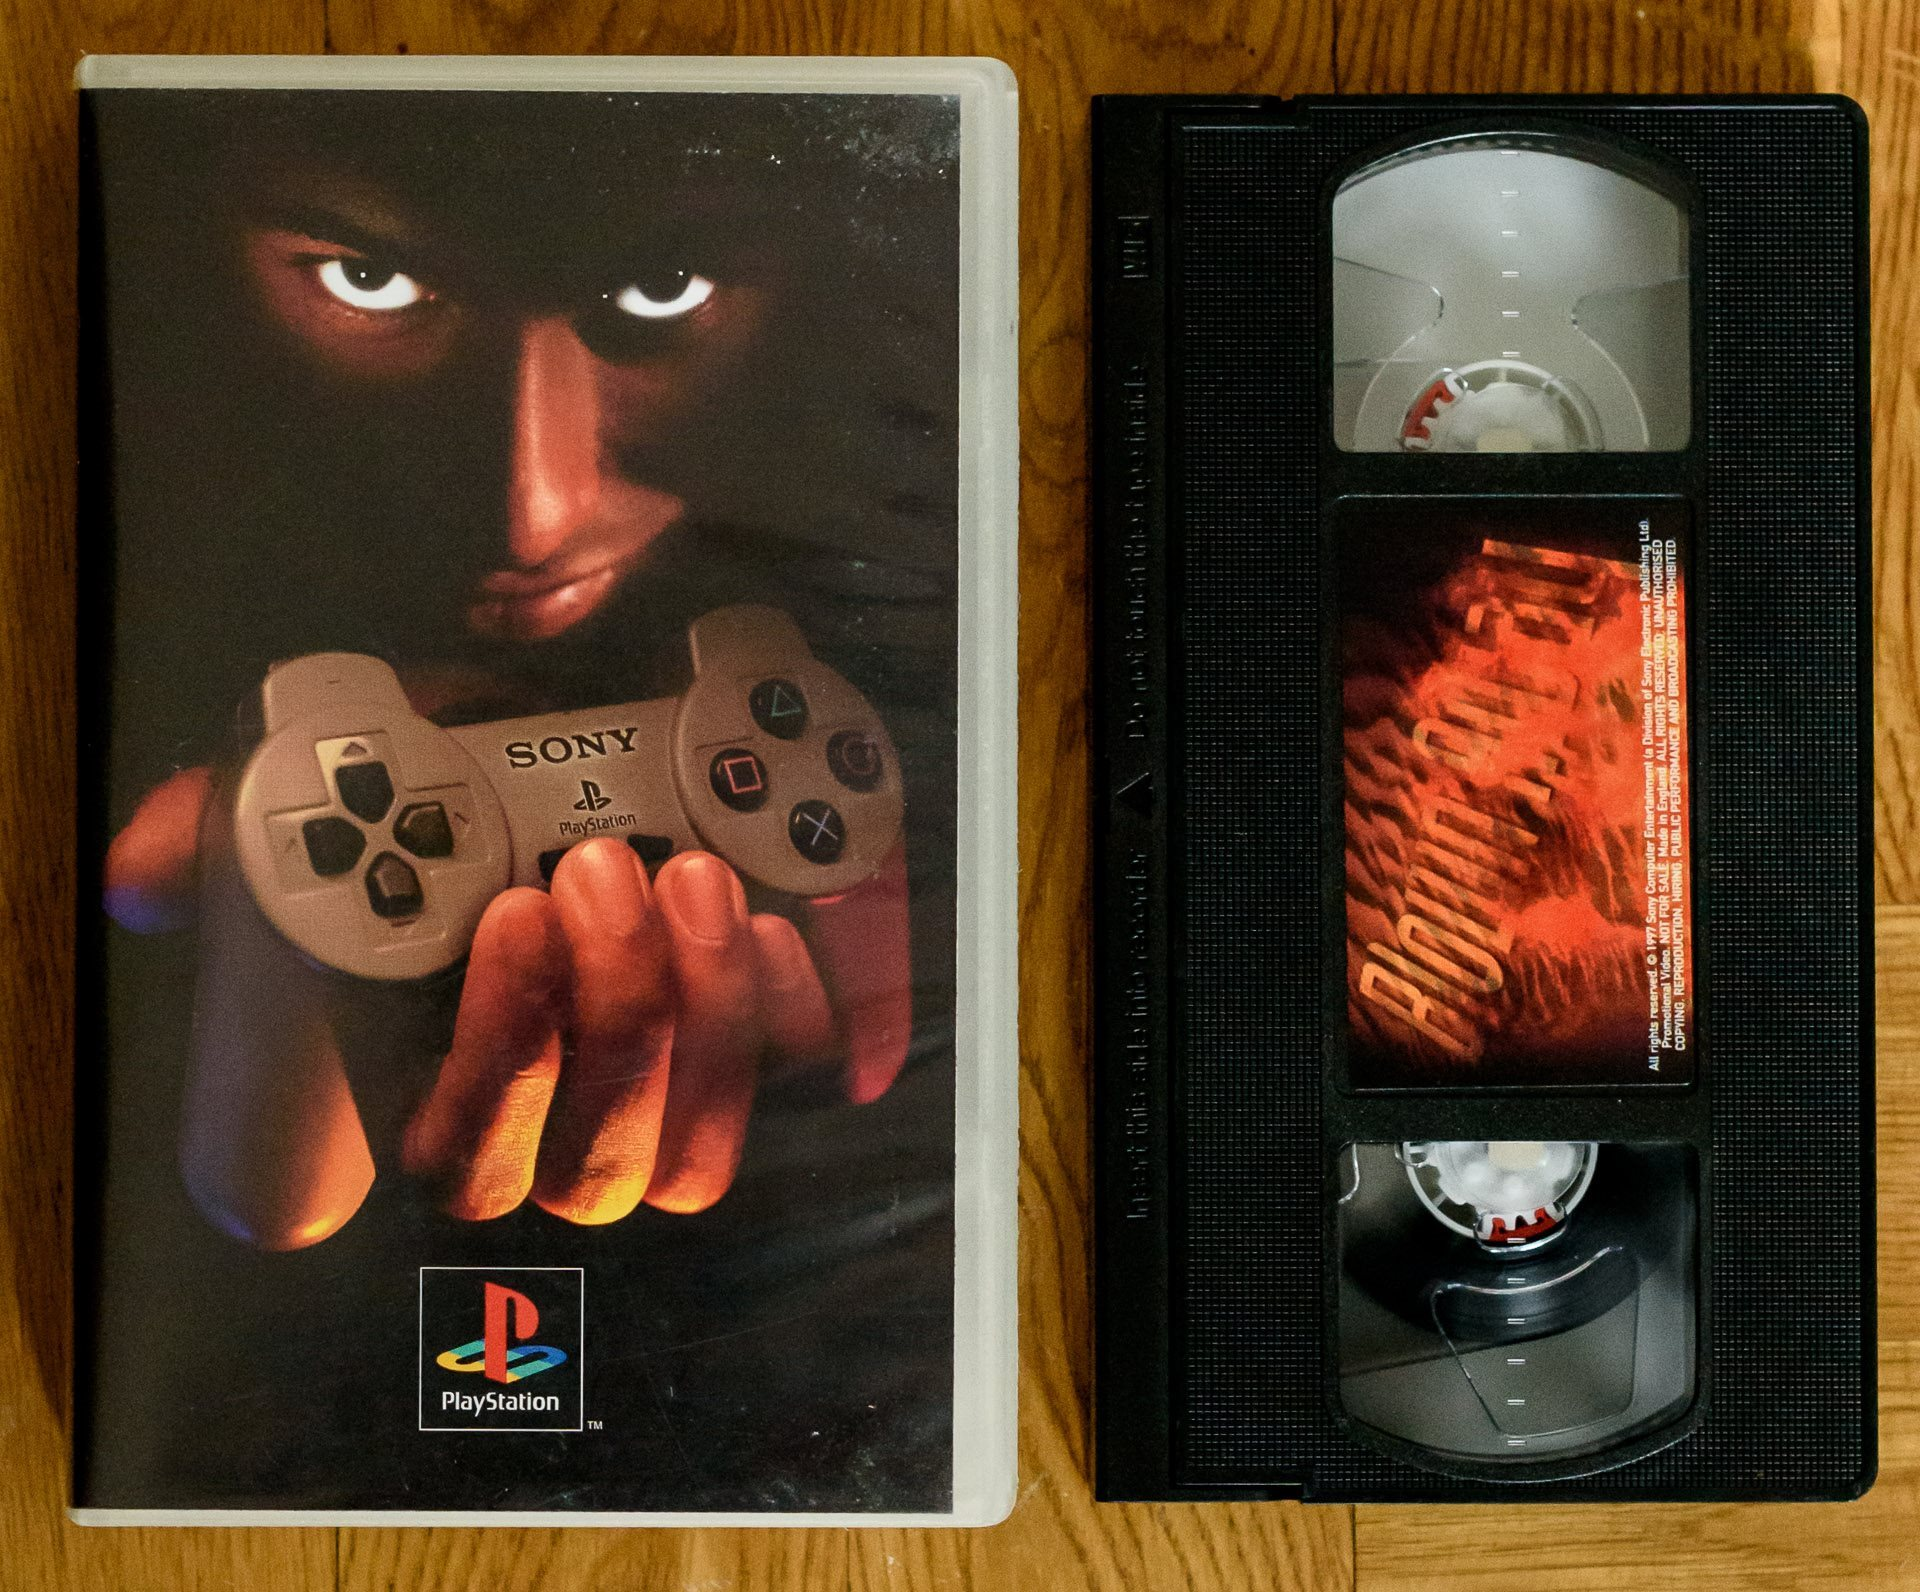 Blown Away - Playstation PS1 VHS Reklam England - 200?